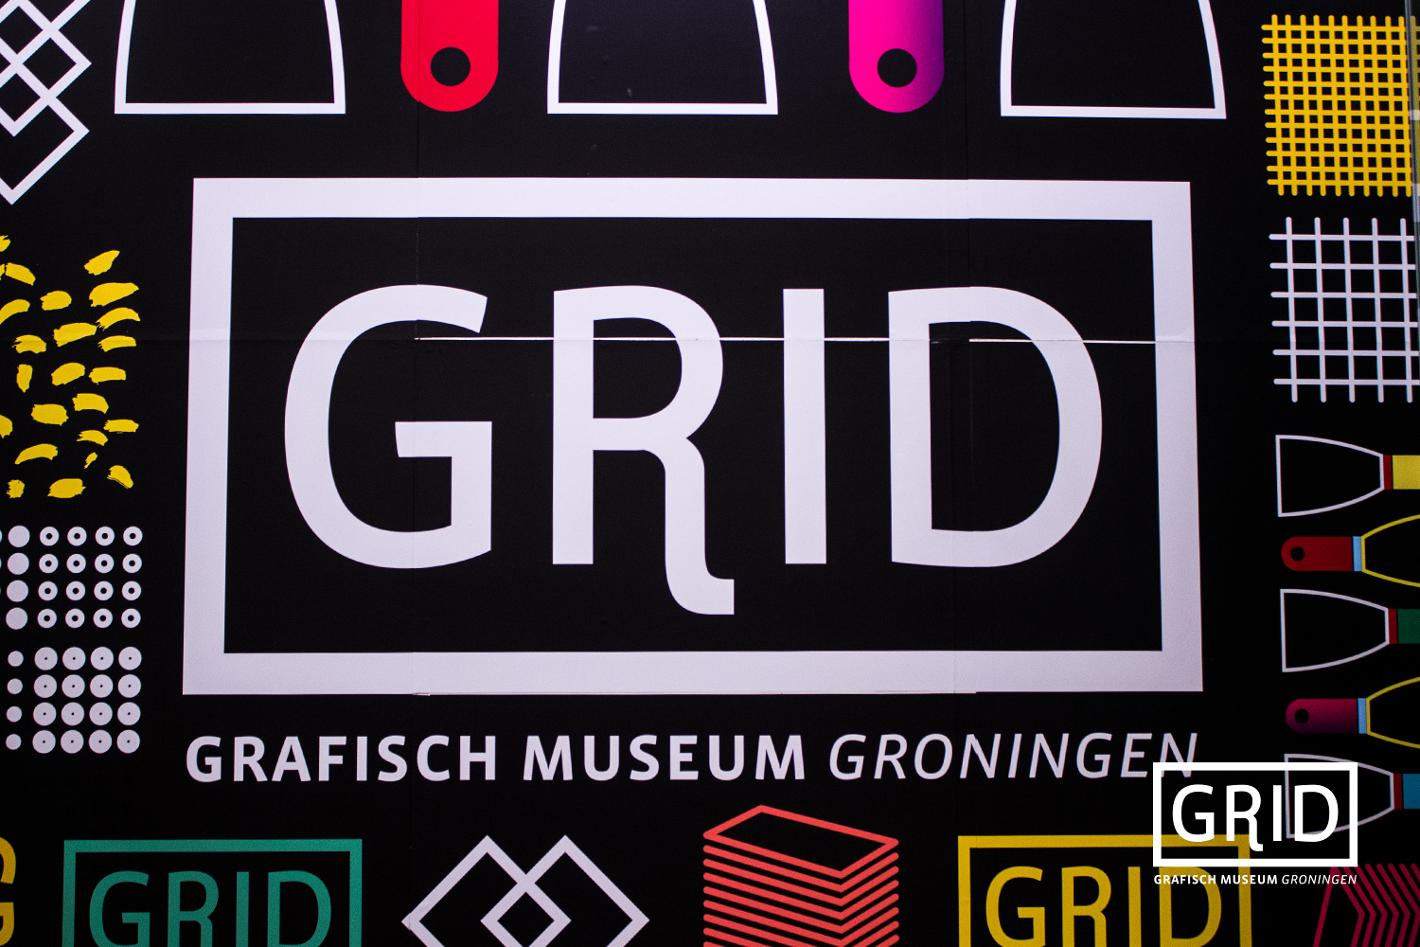 Photo GRID Grafisch Museum Groningen in Groningen, View, Museums & galleries - #2